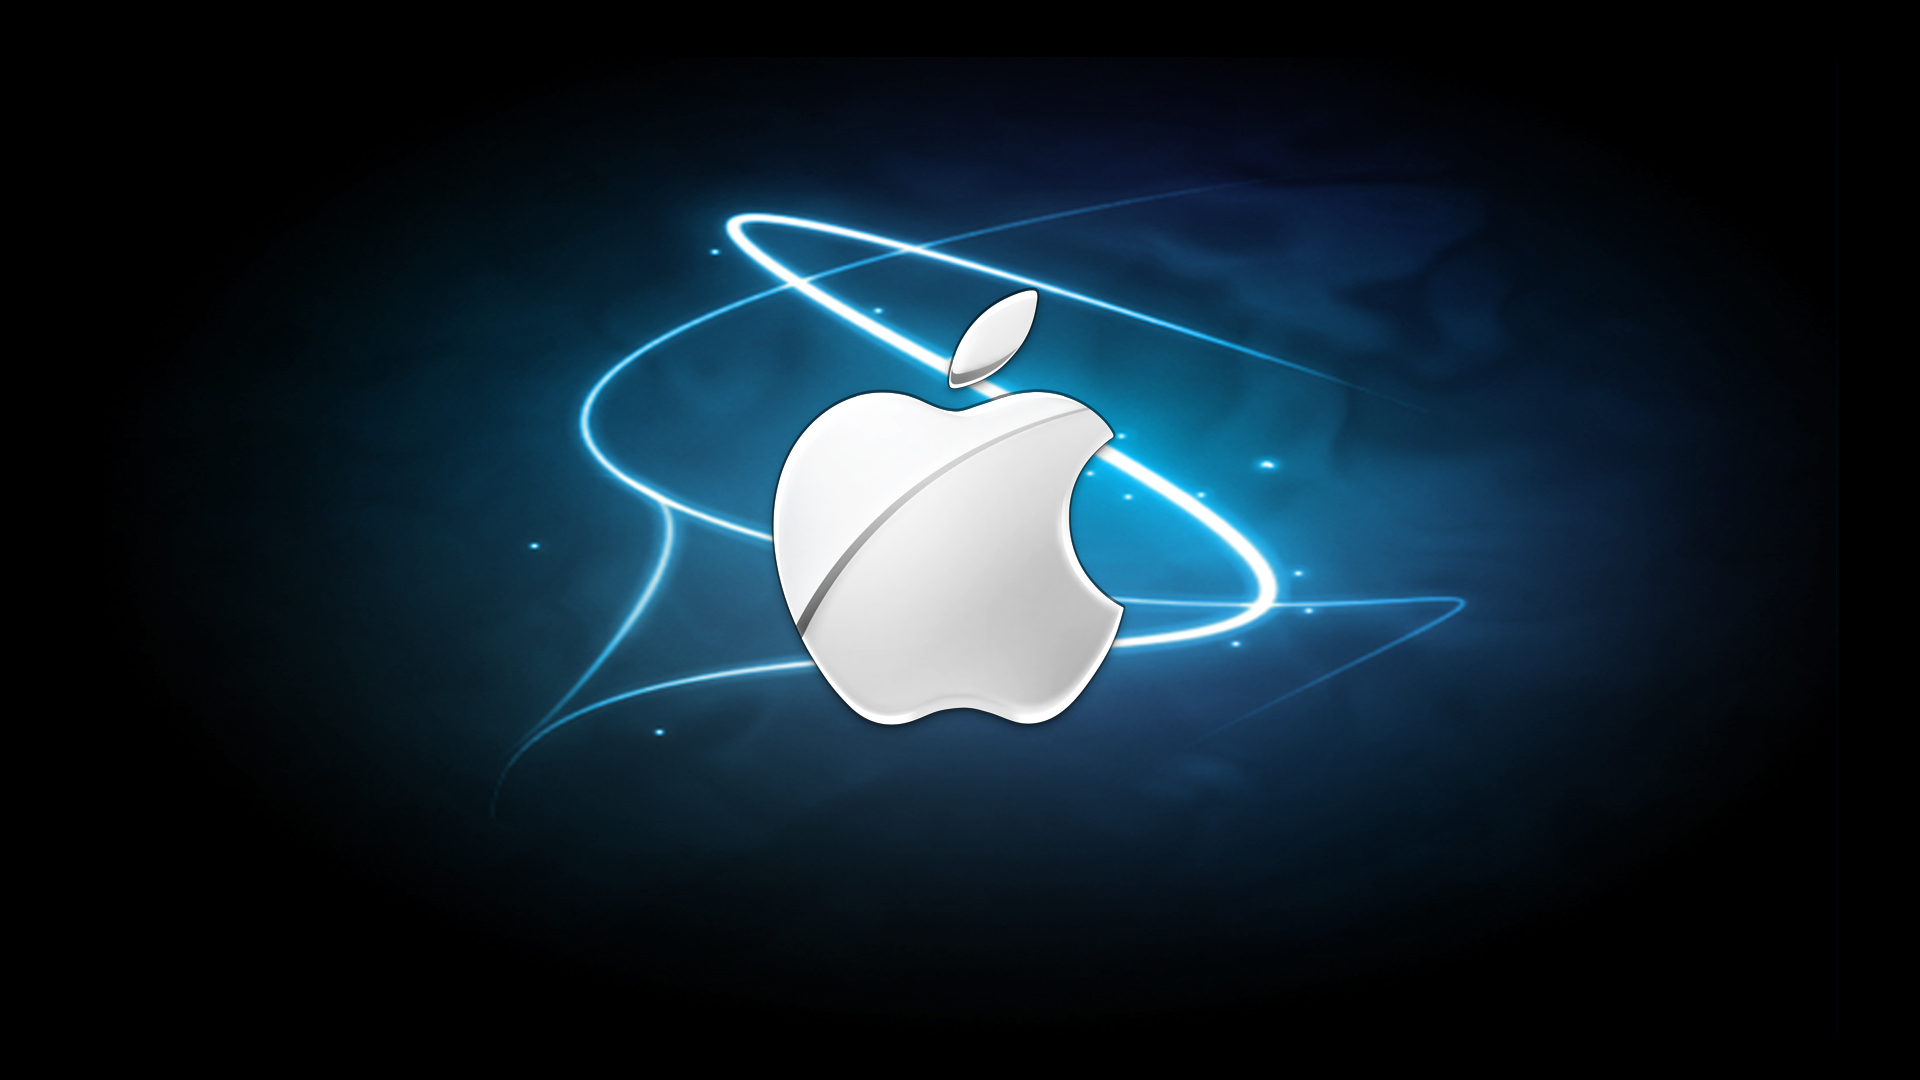 Apple Logo Wallpapers HD blaze